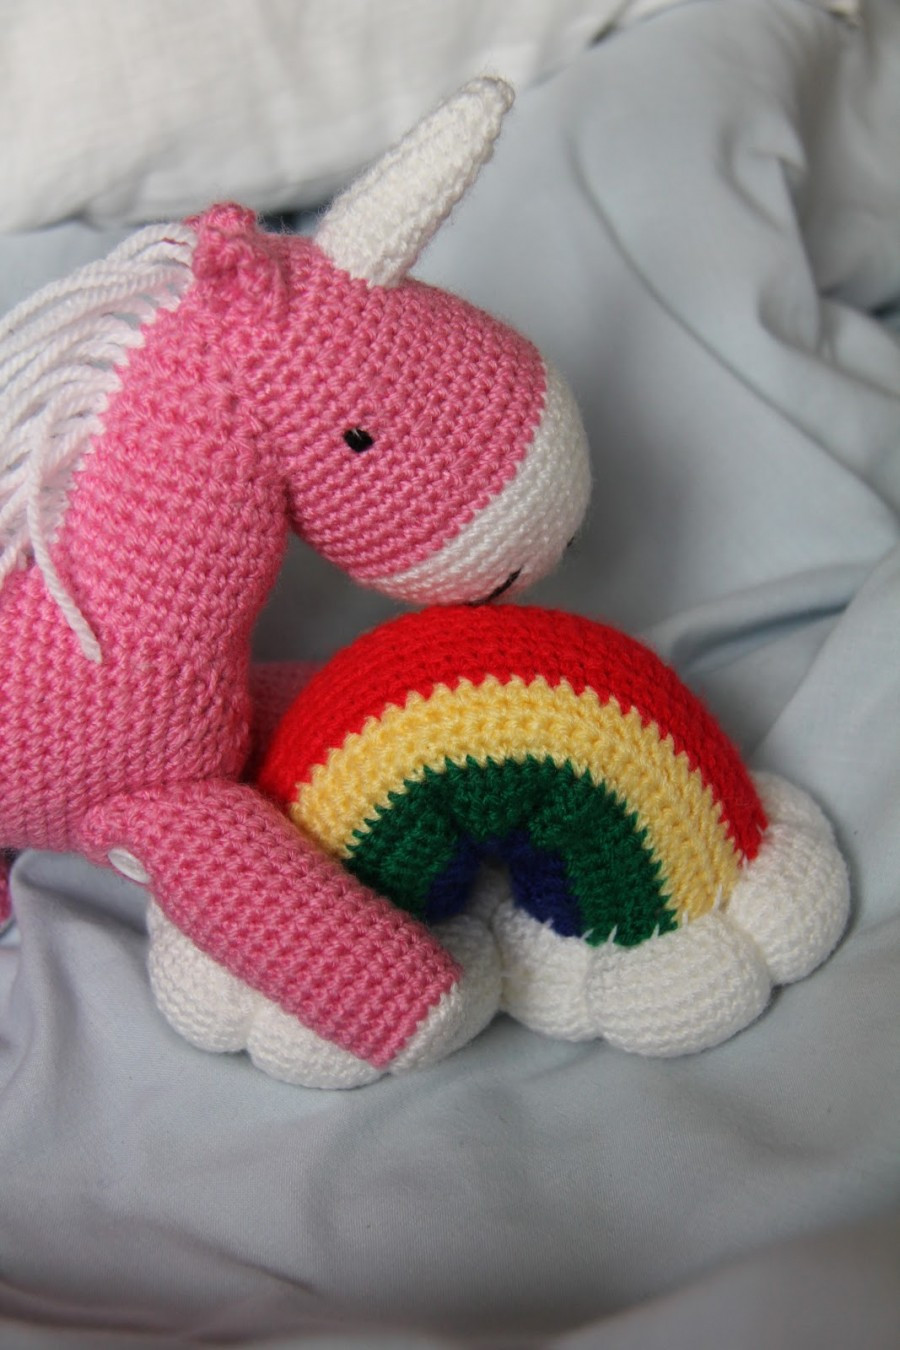 Free Unicorn Crochet Pattern Unique Unicorn Crochet Patterns Of Free Unicorn Crochet Pattern Unique Dada Neon Crochet Tiny Rainbow Unicorn Amigurumi by